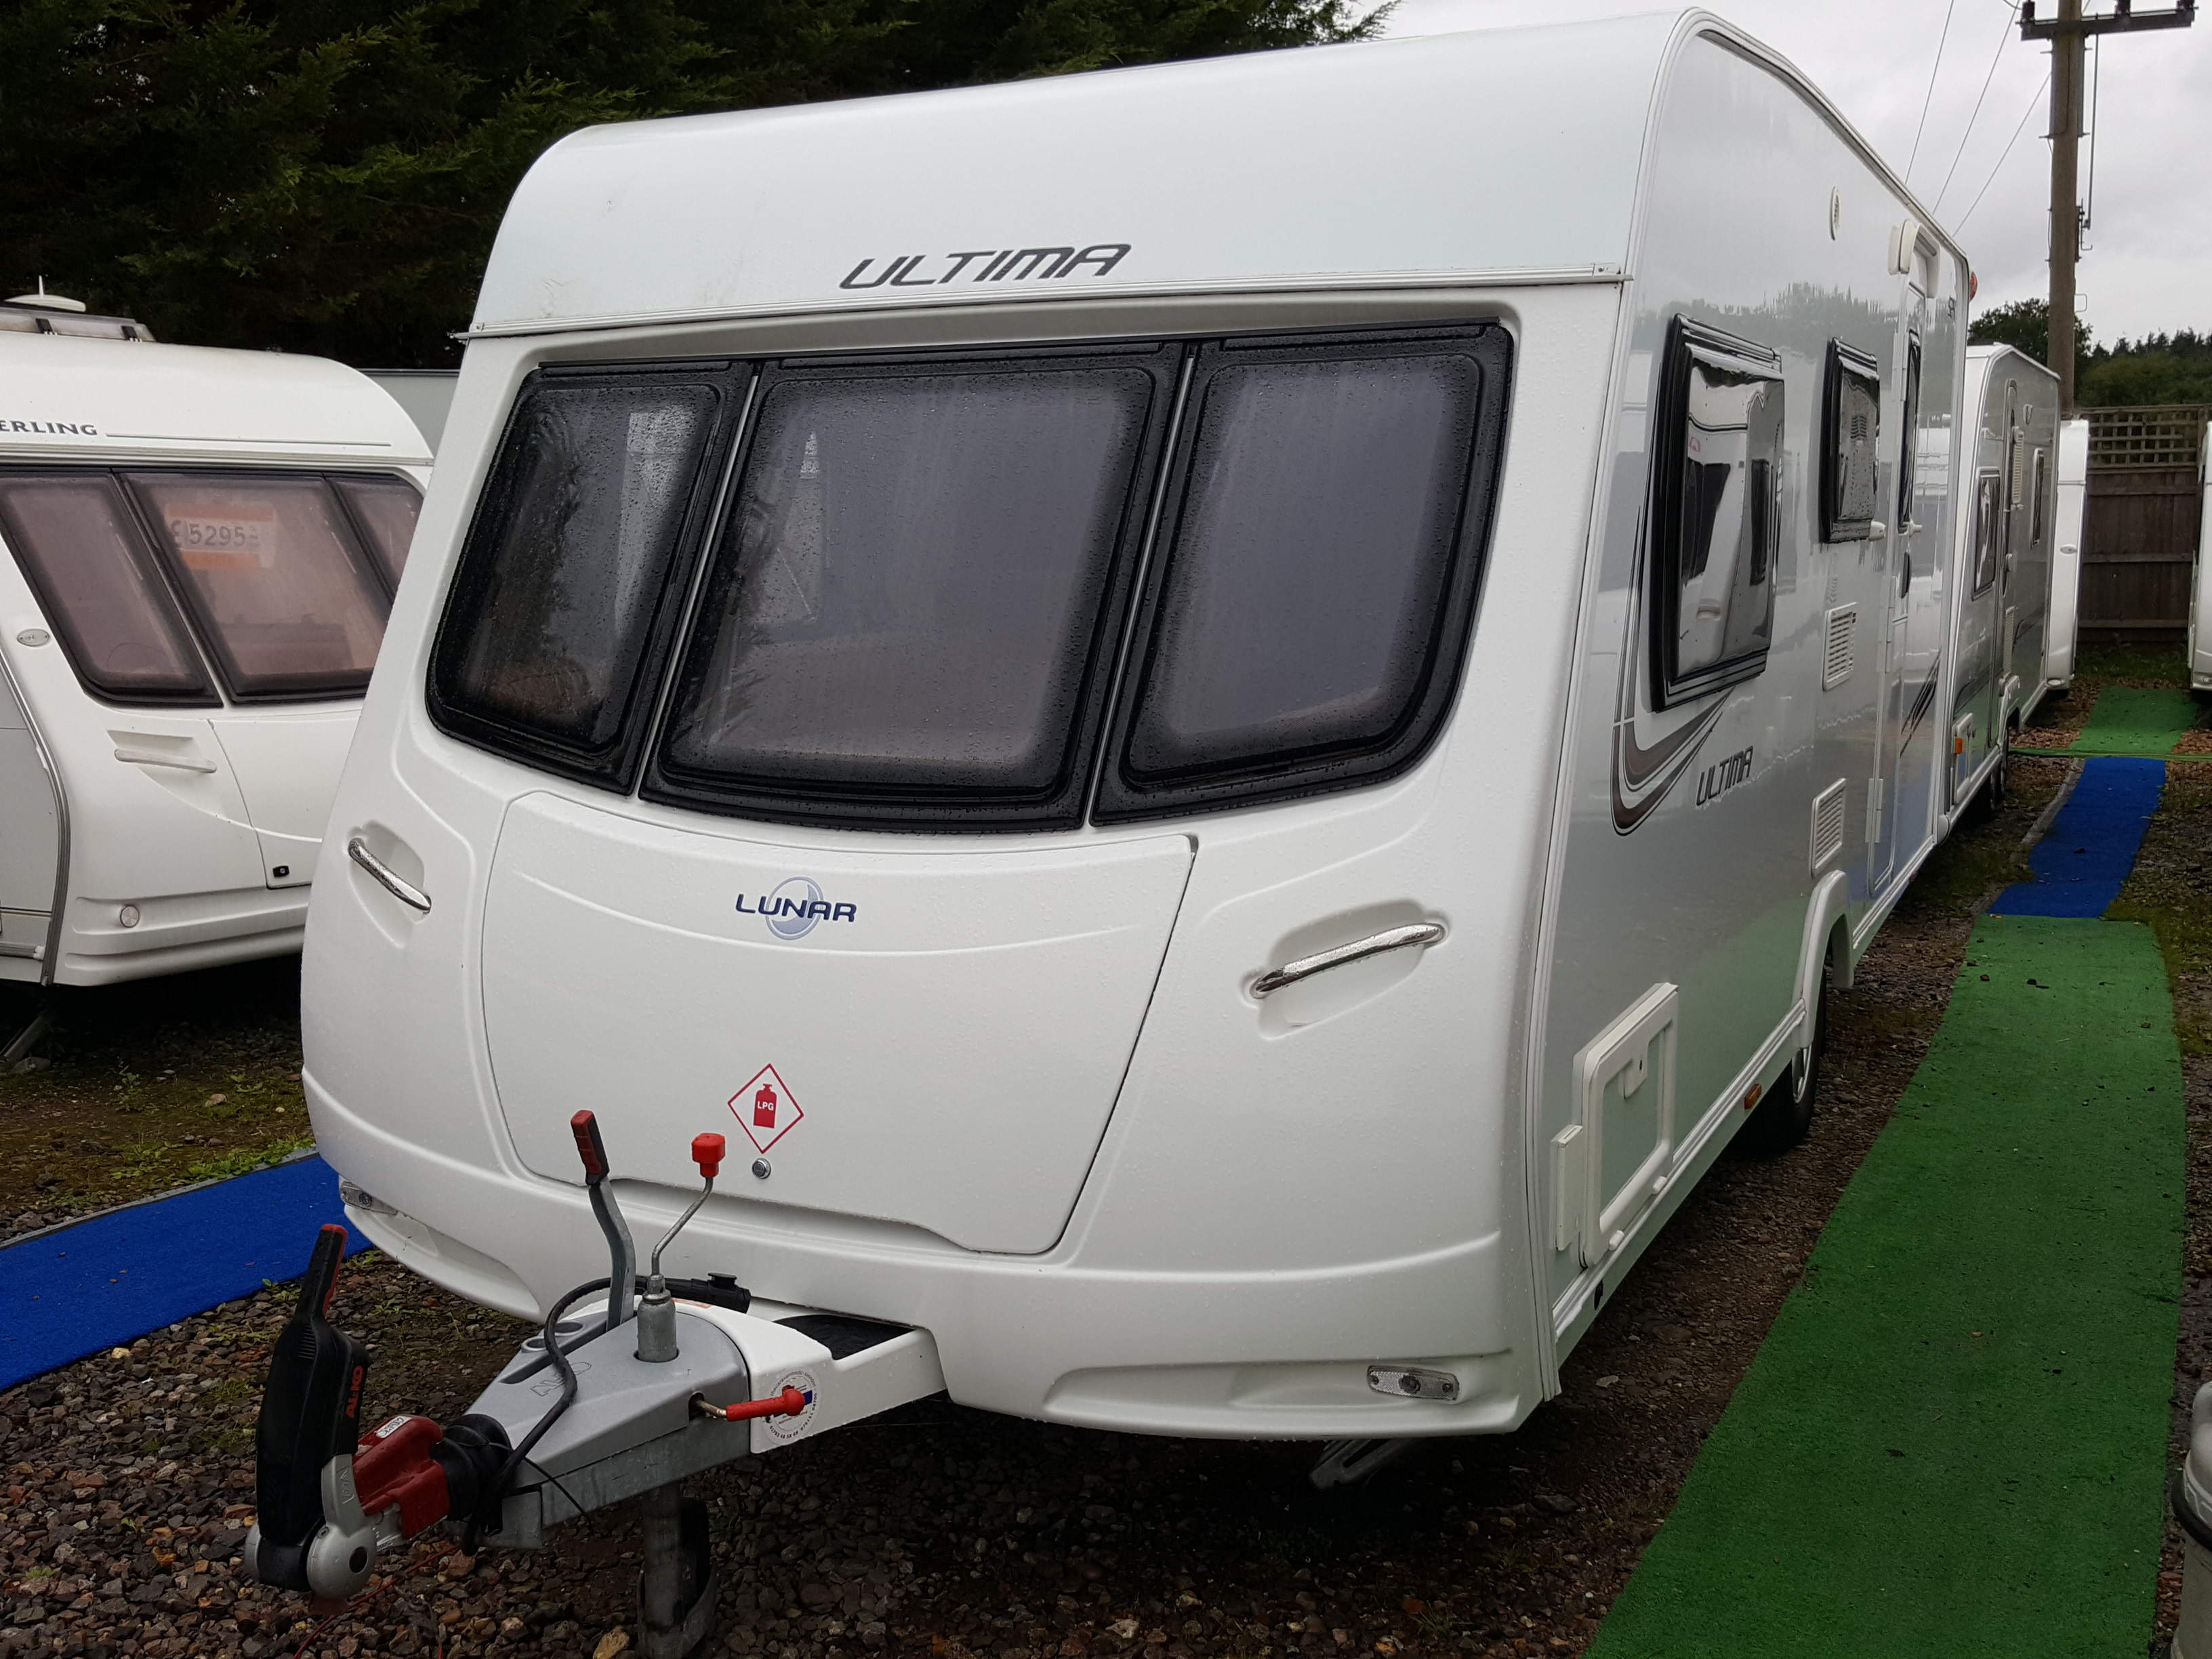 SUPERB 2013 Lunar Ultima 524 4 Berth Side Dinette End Washroom Caravan NOW REDUCED!!